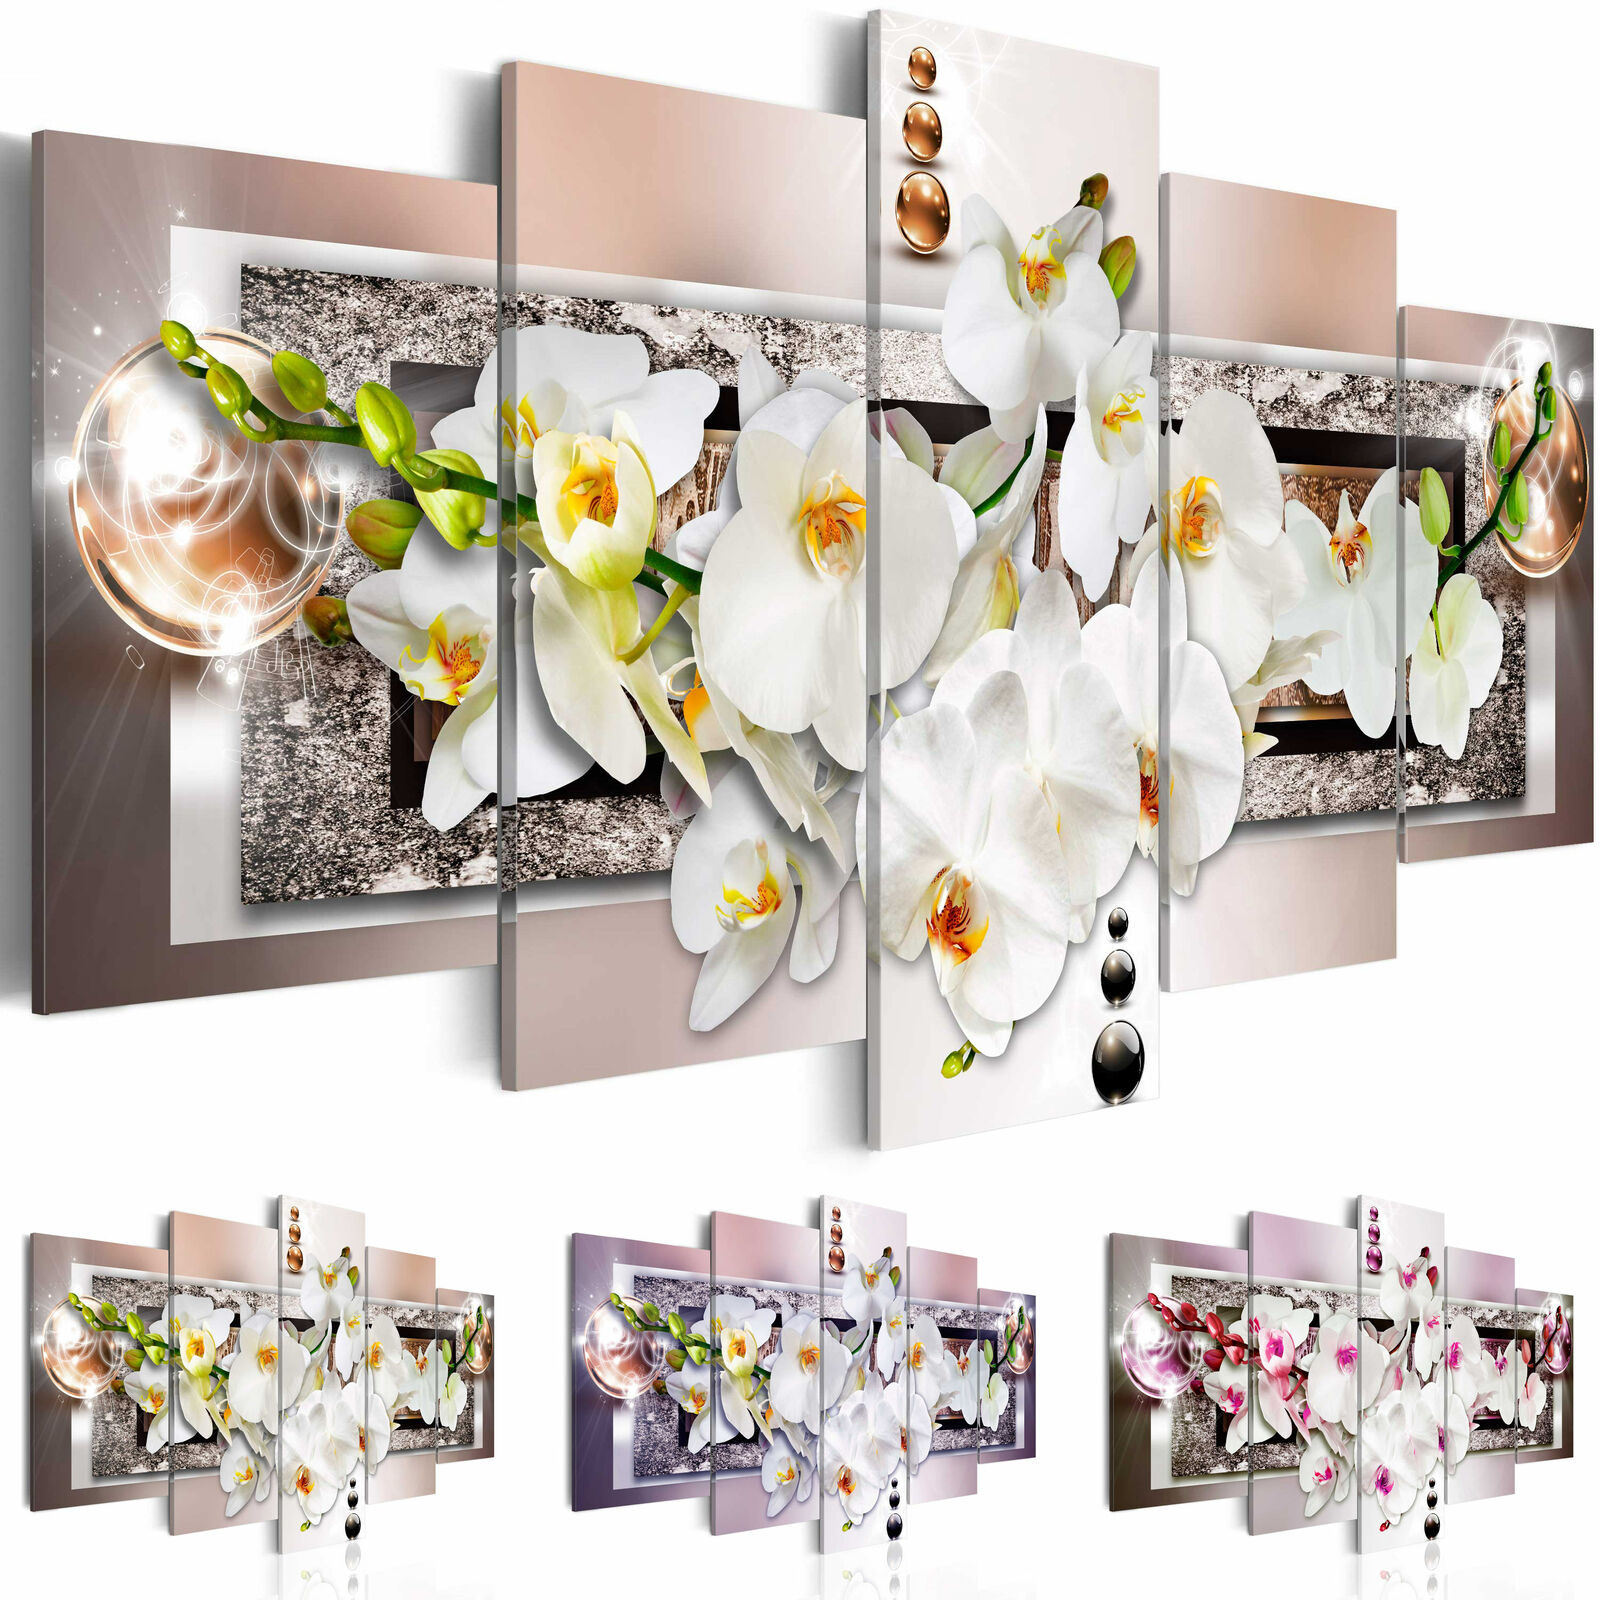 leinwand bilder xxl blumen orchidee abstrakt wandbilder wohnzimmer b a 0085 b n eur 24 90. Black Bedroom Furniture Sets. Home Design Ideas